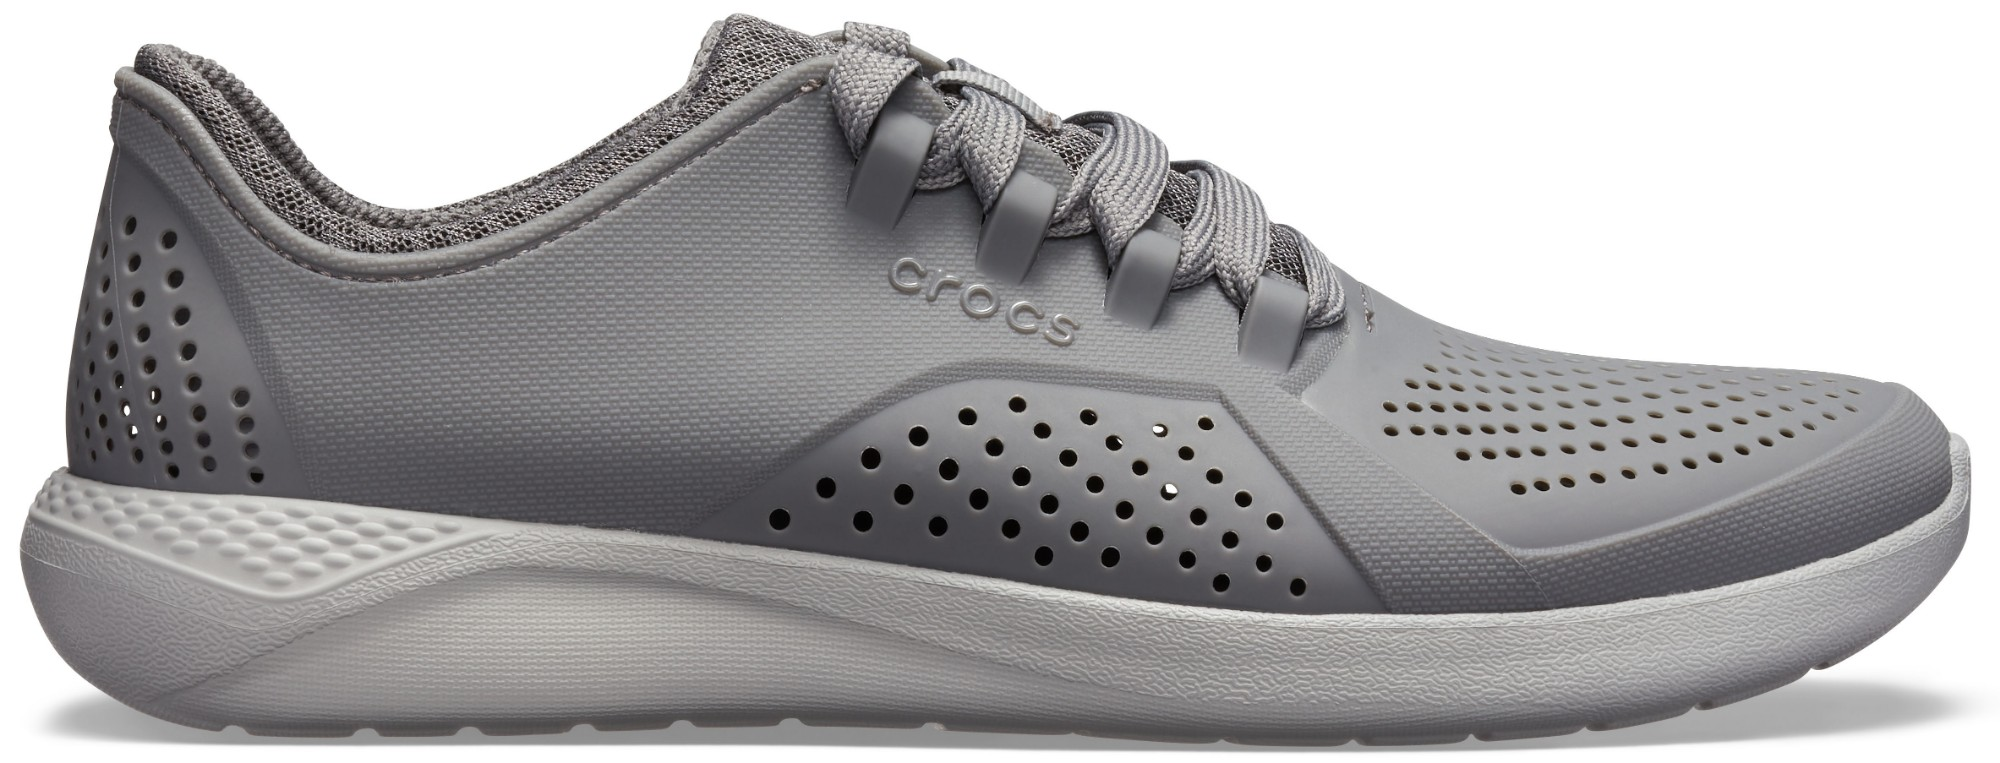 Crocs™ LiteRide Pacer Charcoal/Light Grey 36,5